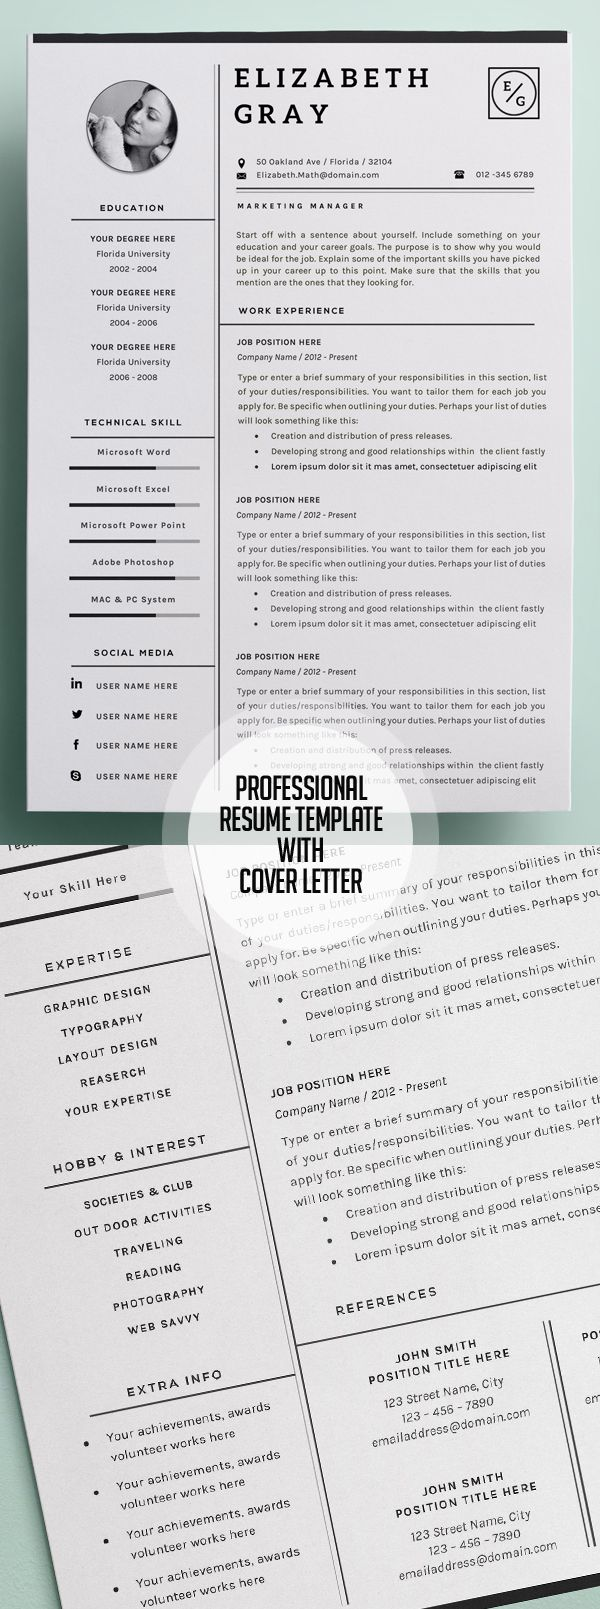 Picnictoimpeachus  Marvelous  Resume Ideas On Pinterest  Resume Resume Templates And  With Luxury Professional And Modern Resume Template With Page Cover Cvtemplate With Nice Resume Skill Section Also Actor Resume Template Word In Addition Skill Section Of Resume And Wizard Resume As Well As How To Create A Free Resume Additionally Laboratory Technician Resume From Pinterestcom With Picnictoimpeachus  Luxury  Resume Ideas On Pinterest  Resume Resume Templates And  With Nice Professional And Modern Resume Template With Page Cover Cvtemplate And Marvelous Resume Skill Section Also Actor Resume Template Word In Addition Skill Section Of Resume From Pinterestcom